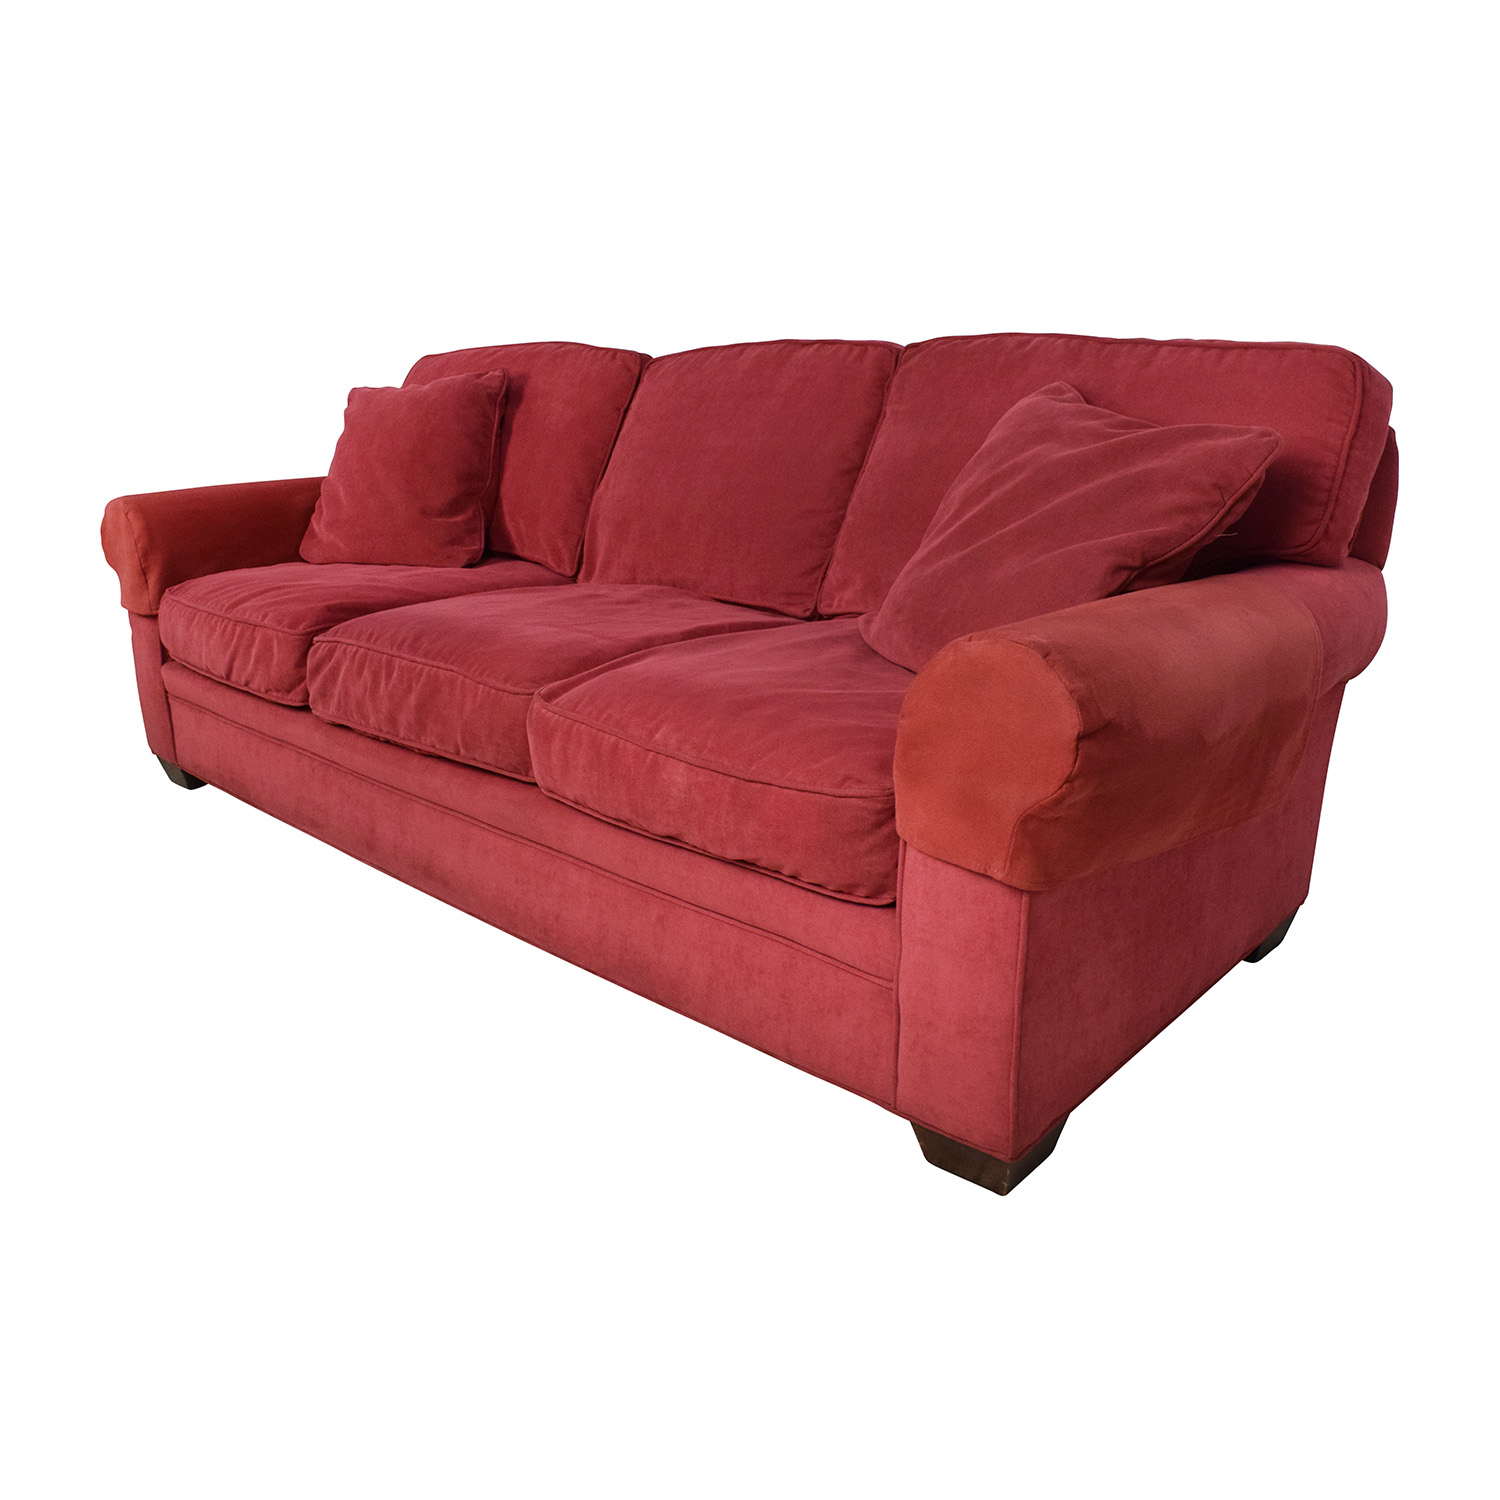 77 off crate and barrel crate barrel microfiber suede for Classic loveseat